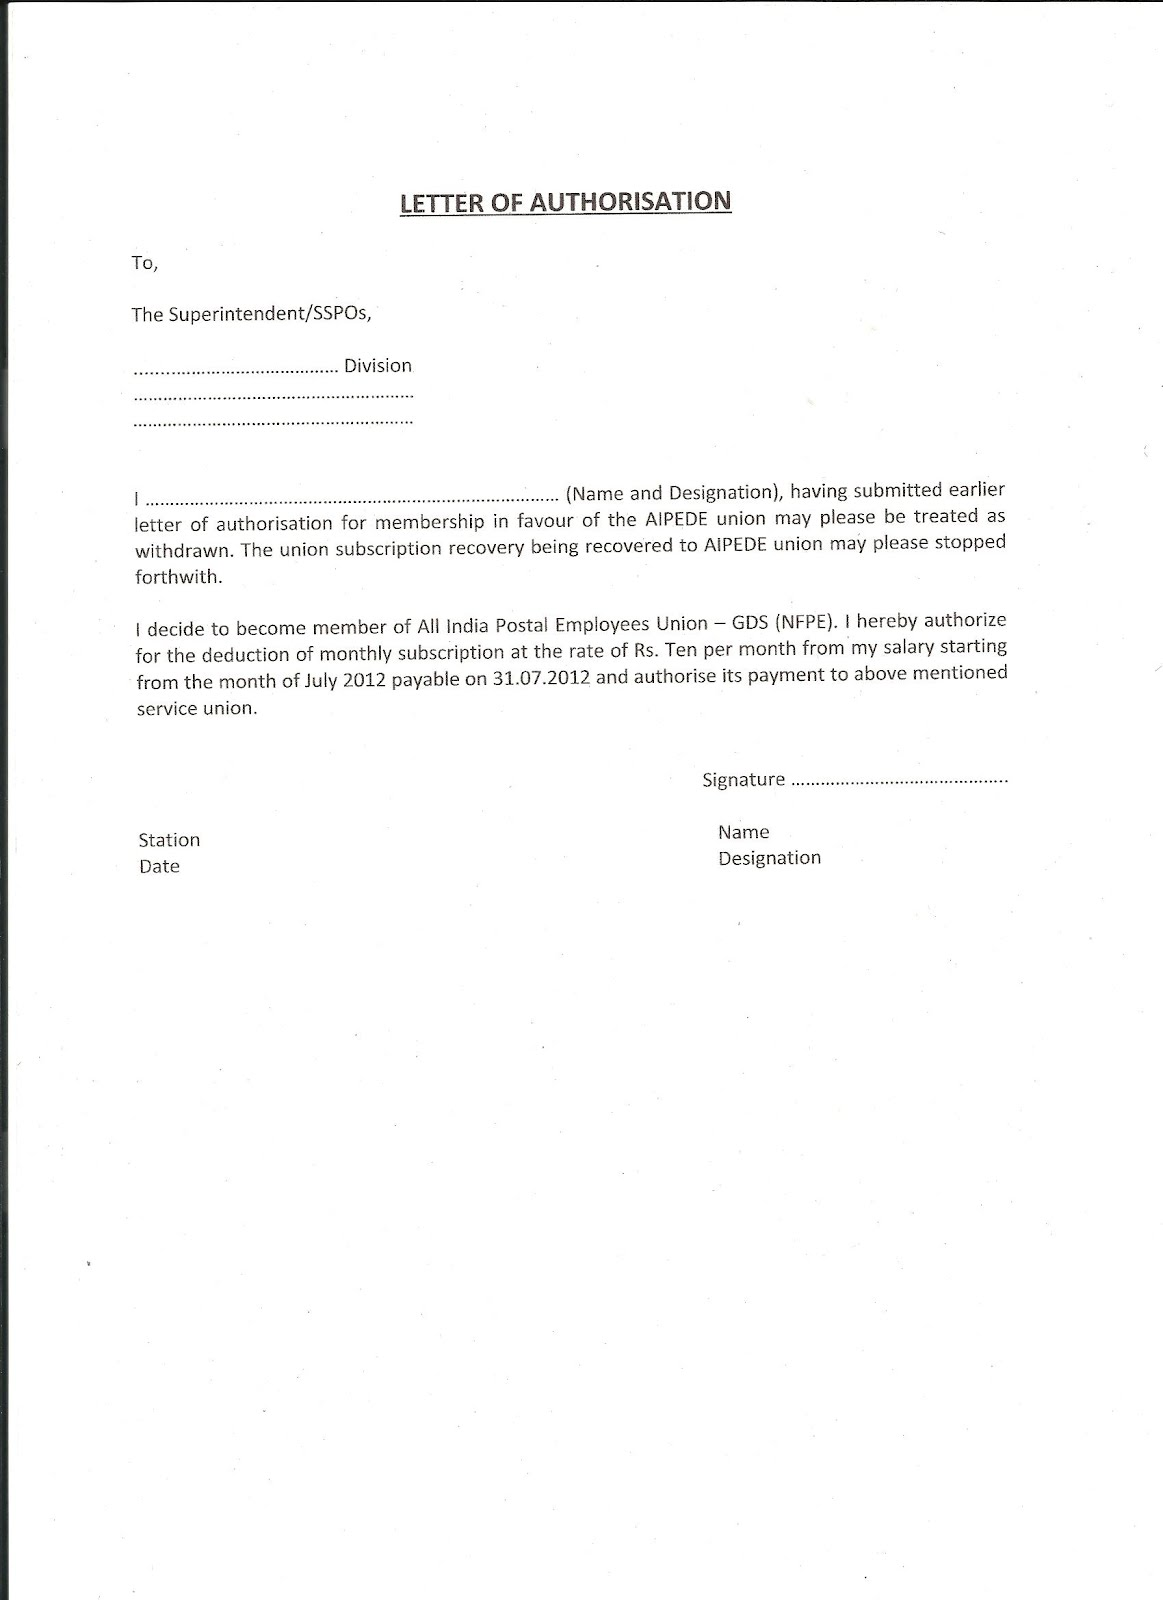 National Federation Of Postal Employees Letter Of Authorisation